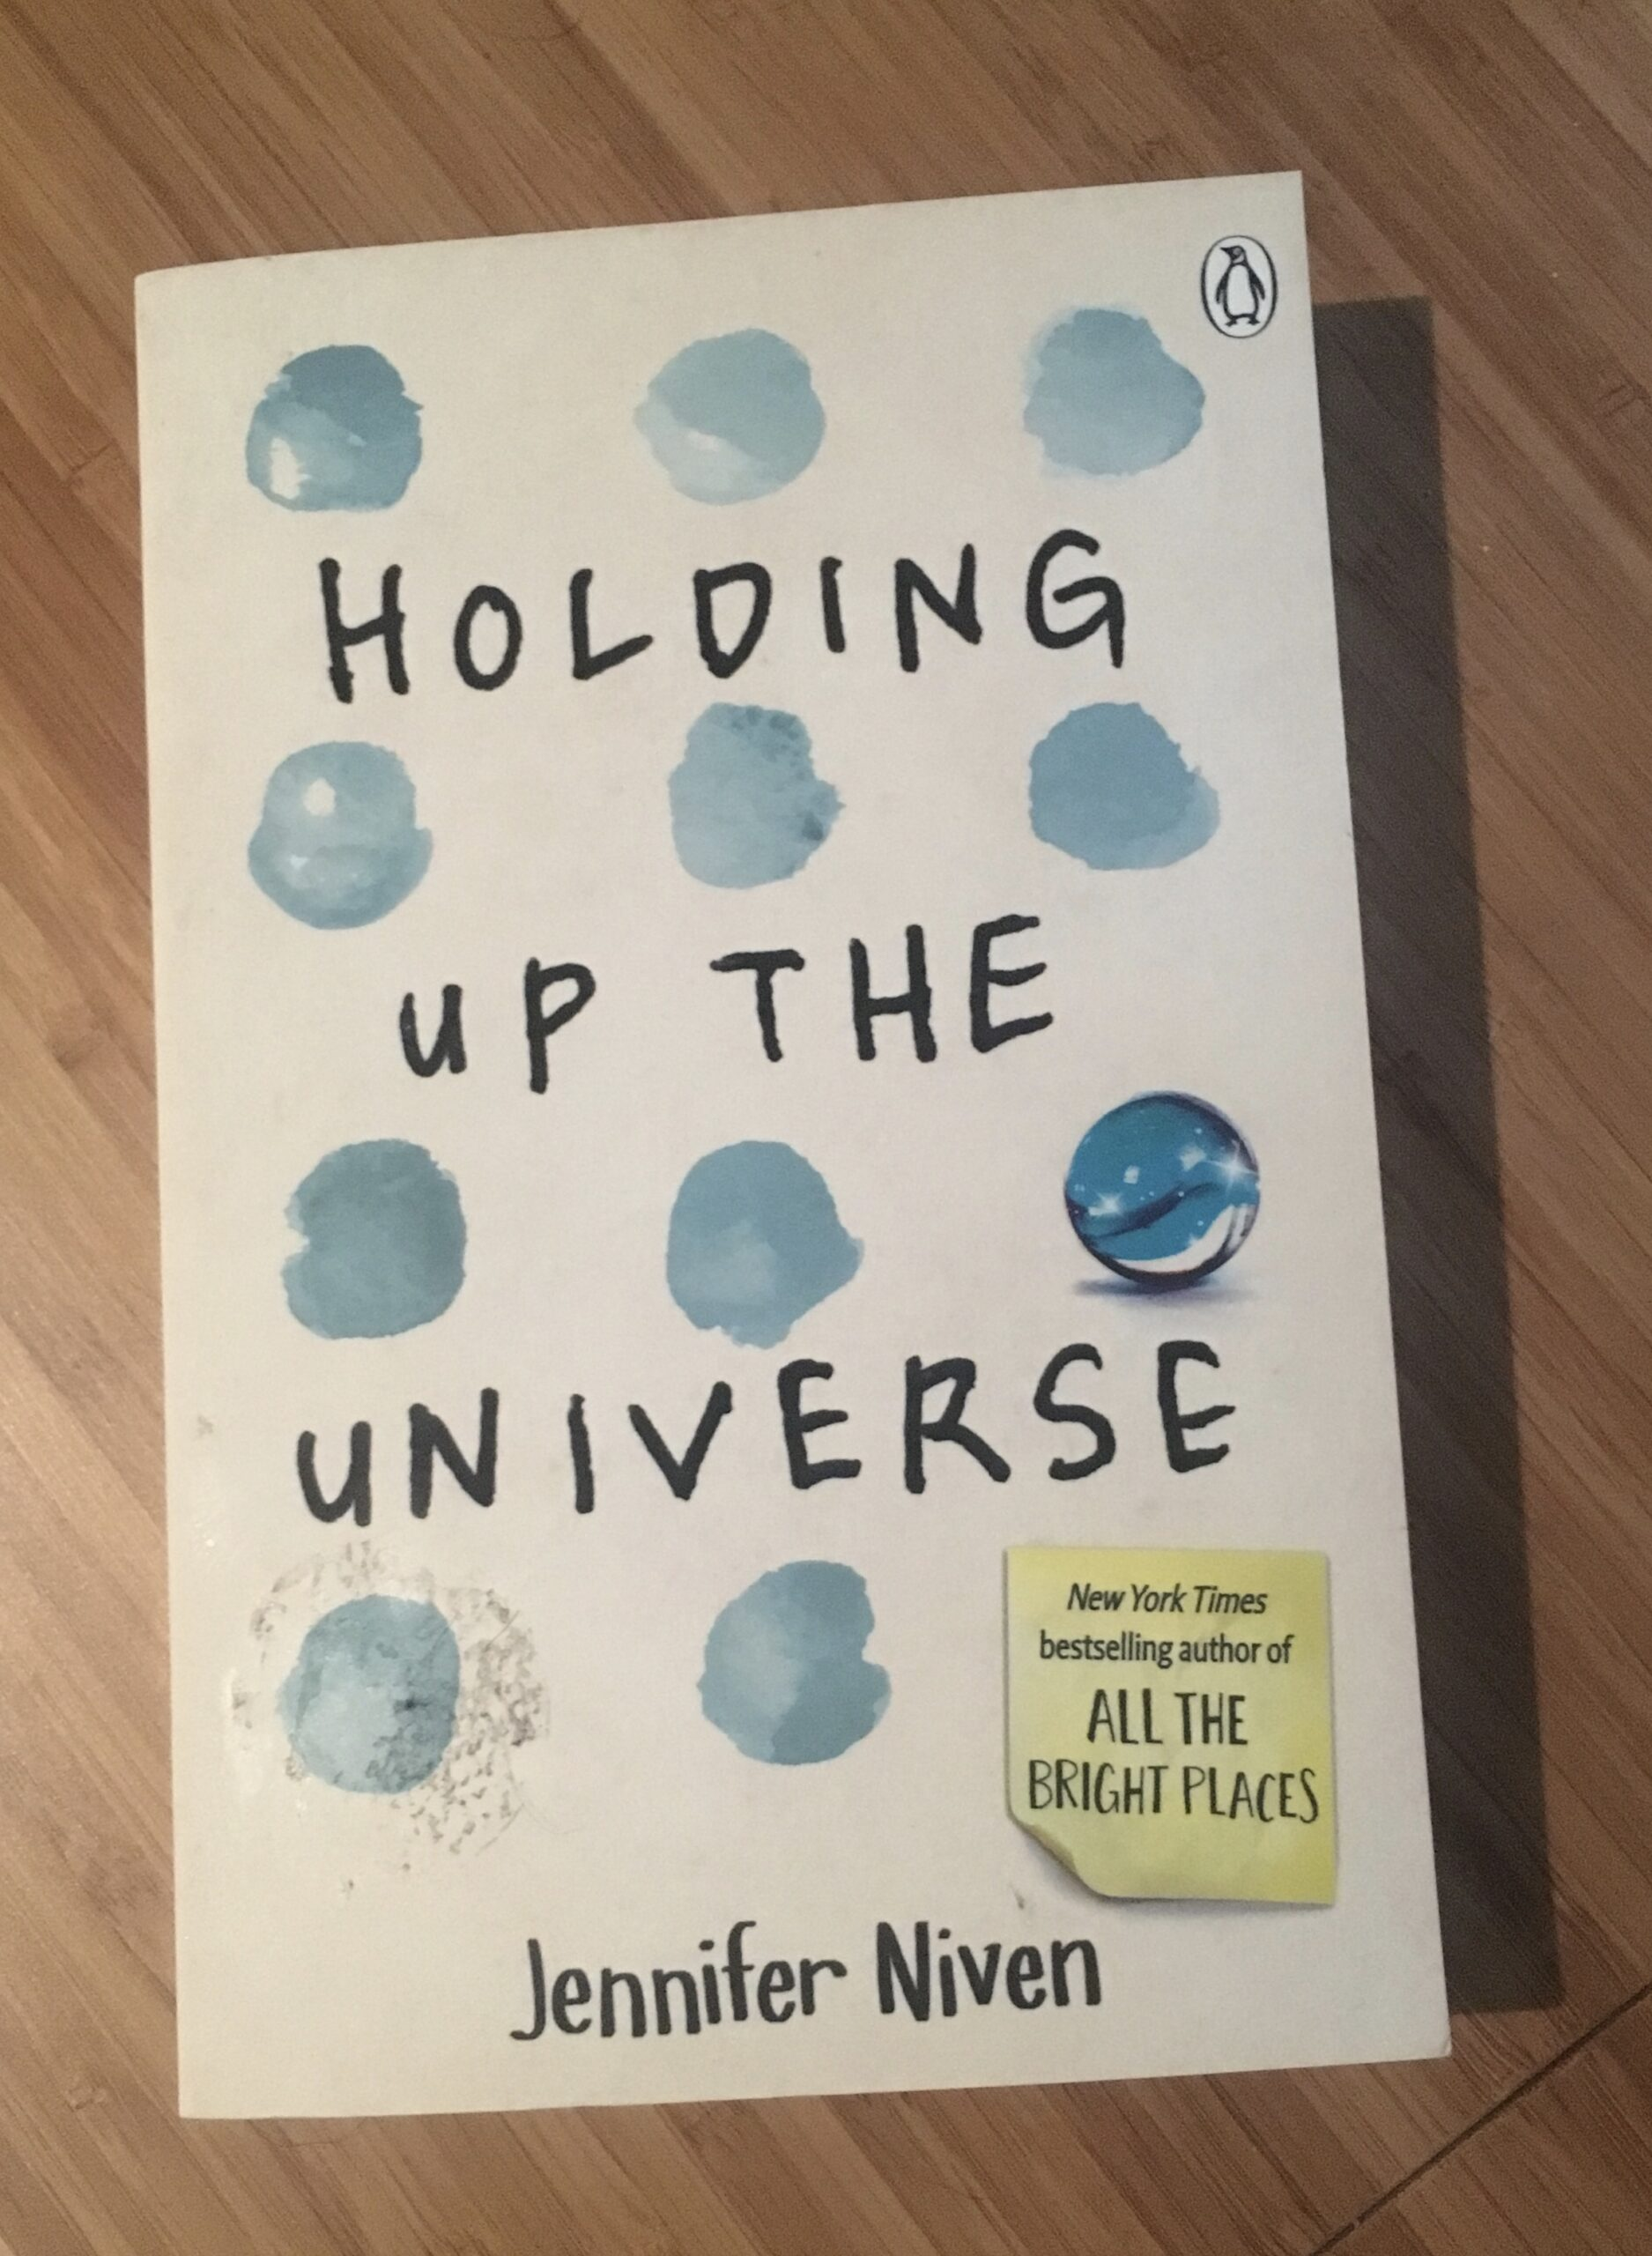 2017 Reading Challenge, Book 12, Holding Up the Universe